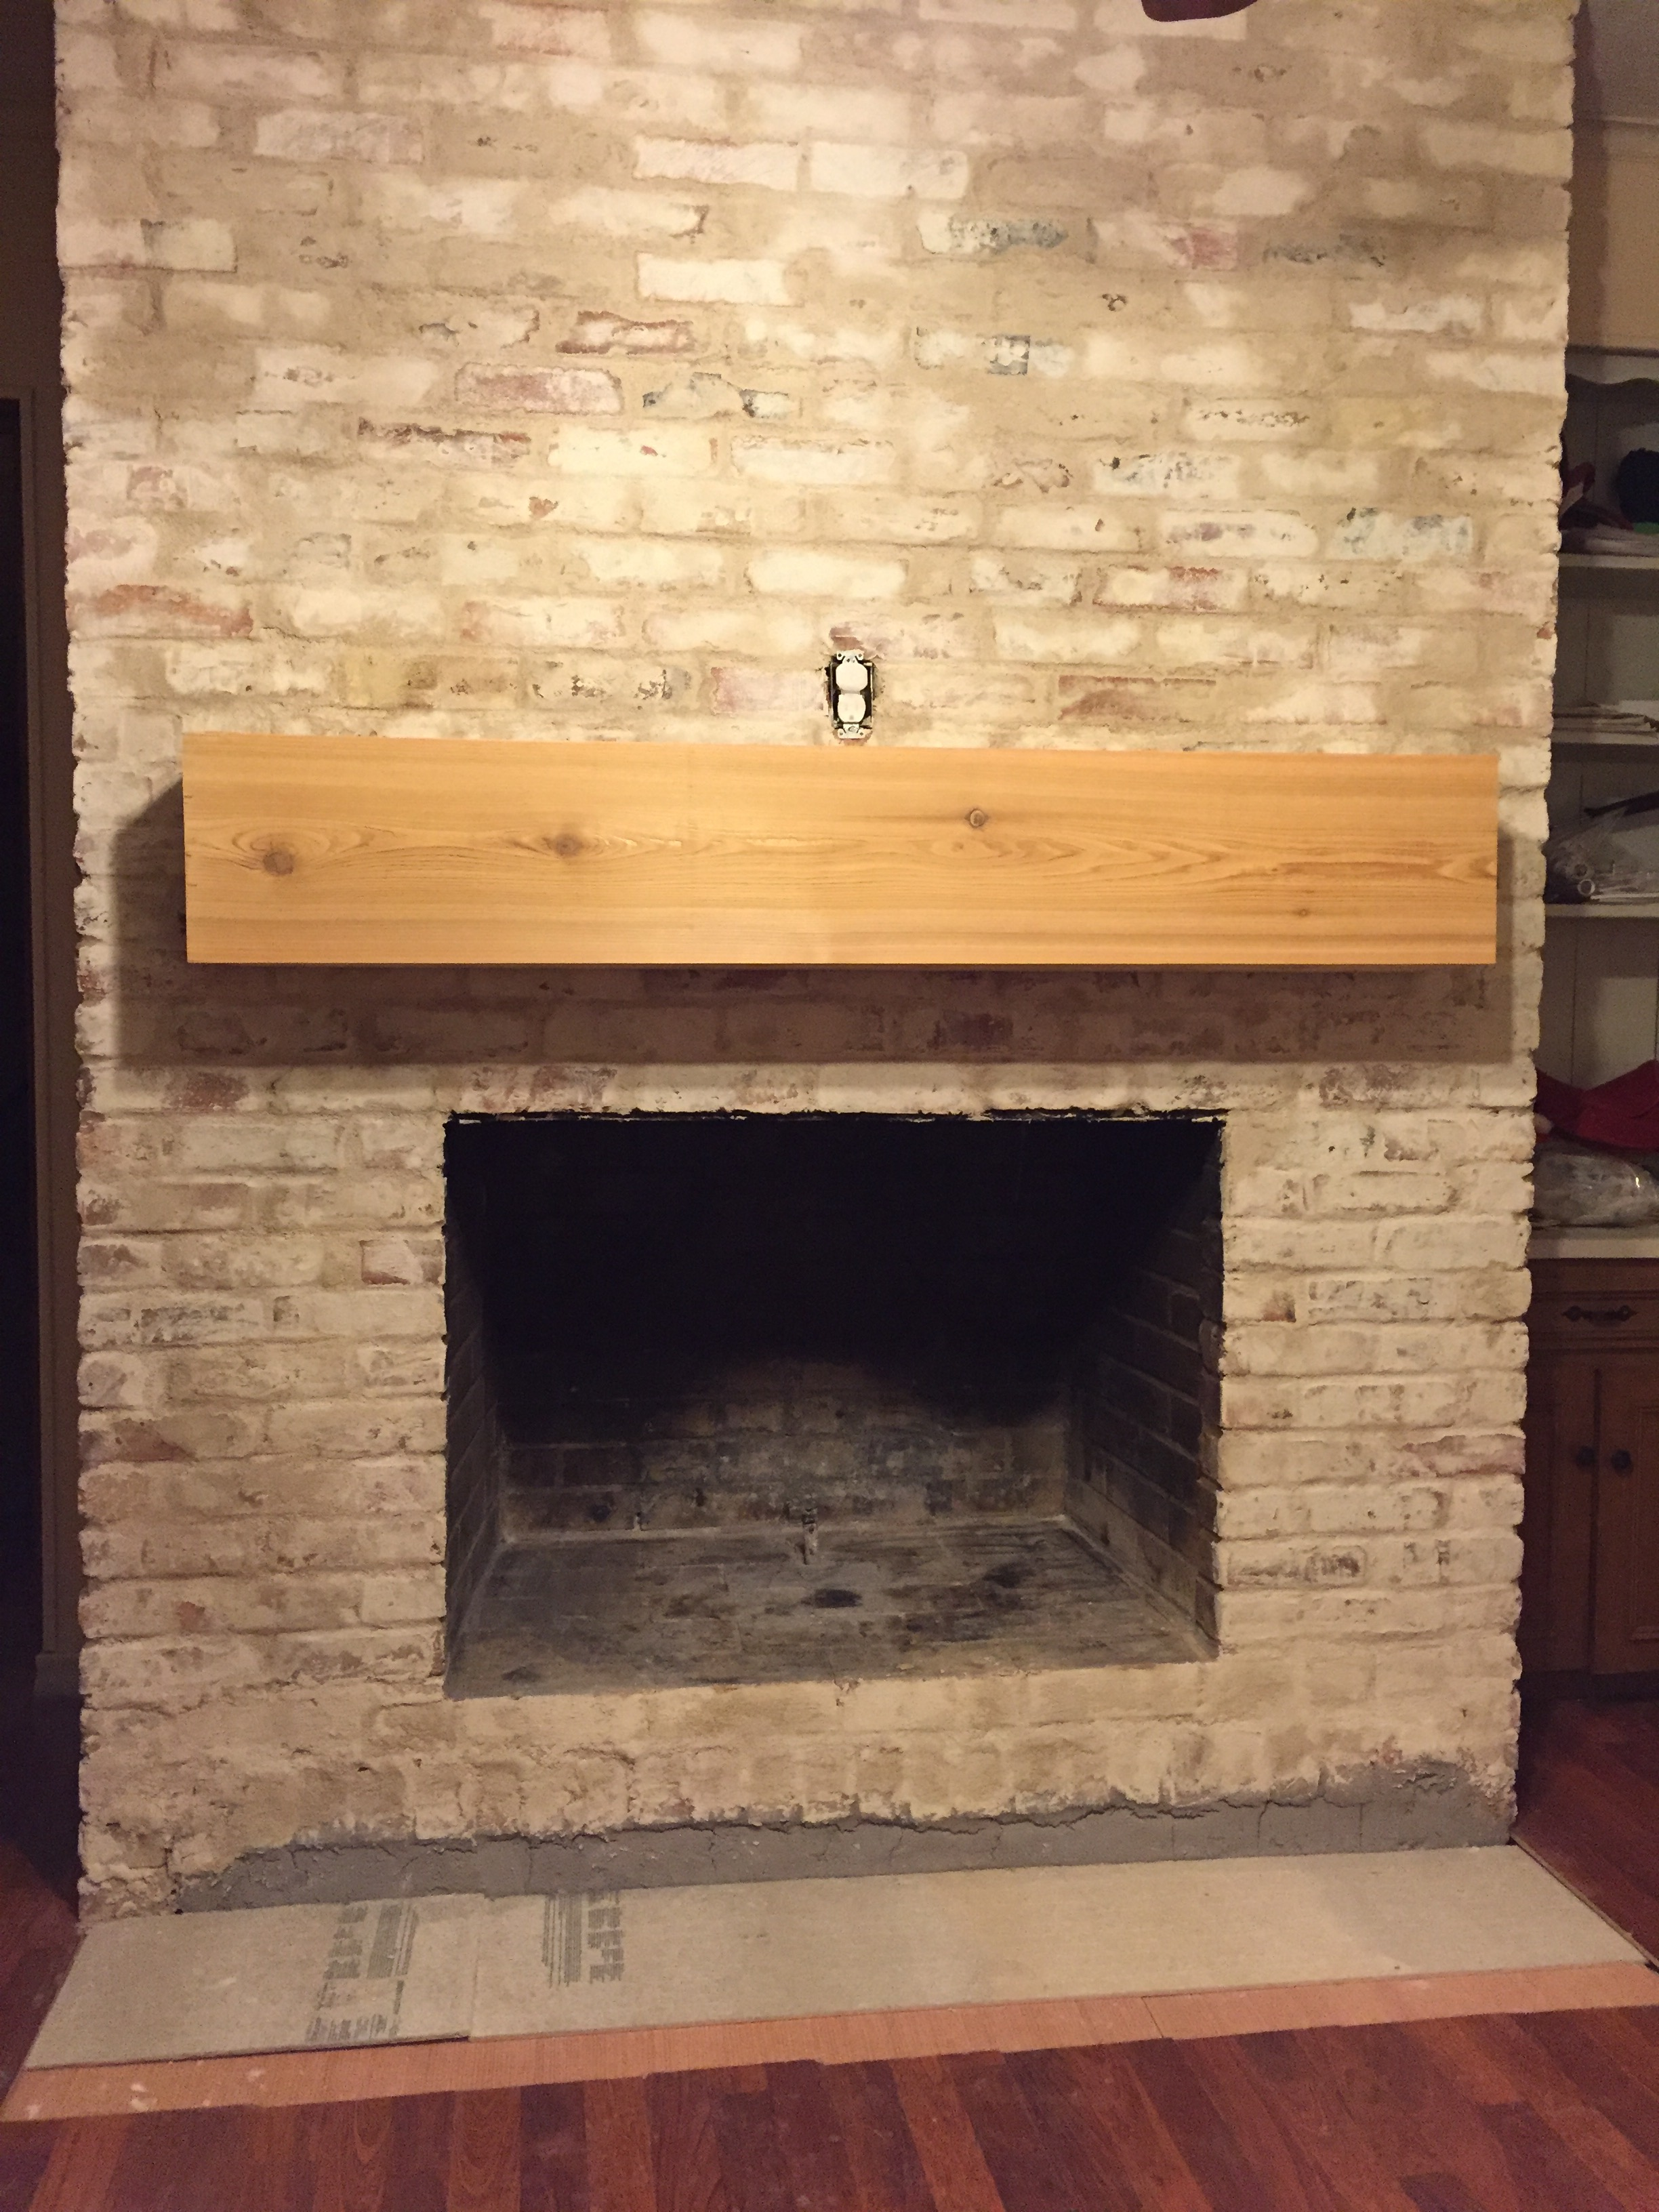 Lime Wash Brick Fireplace How To Mortar Wash German Smear A Brick Fireplace Updated May